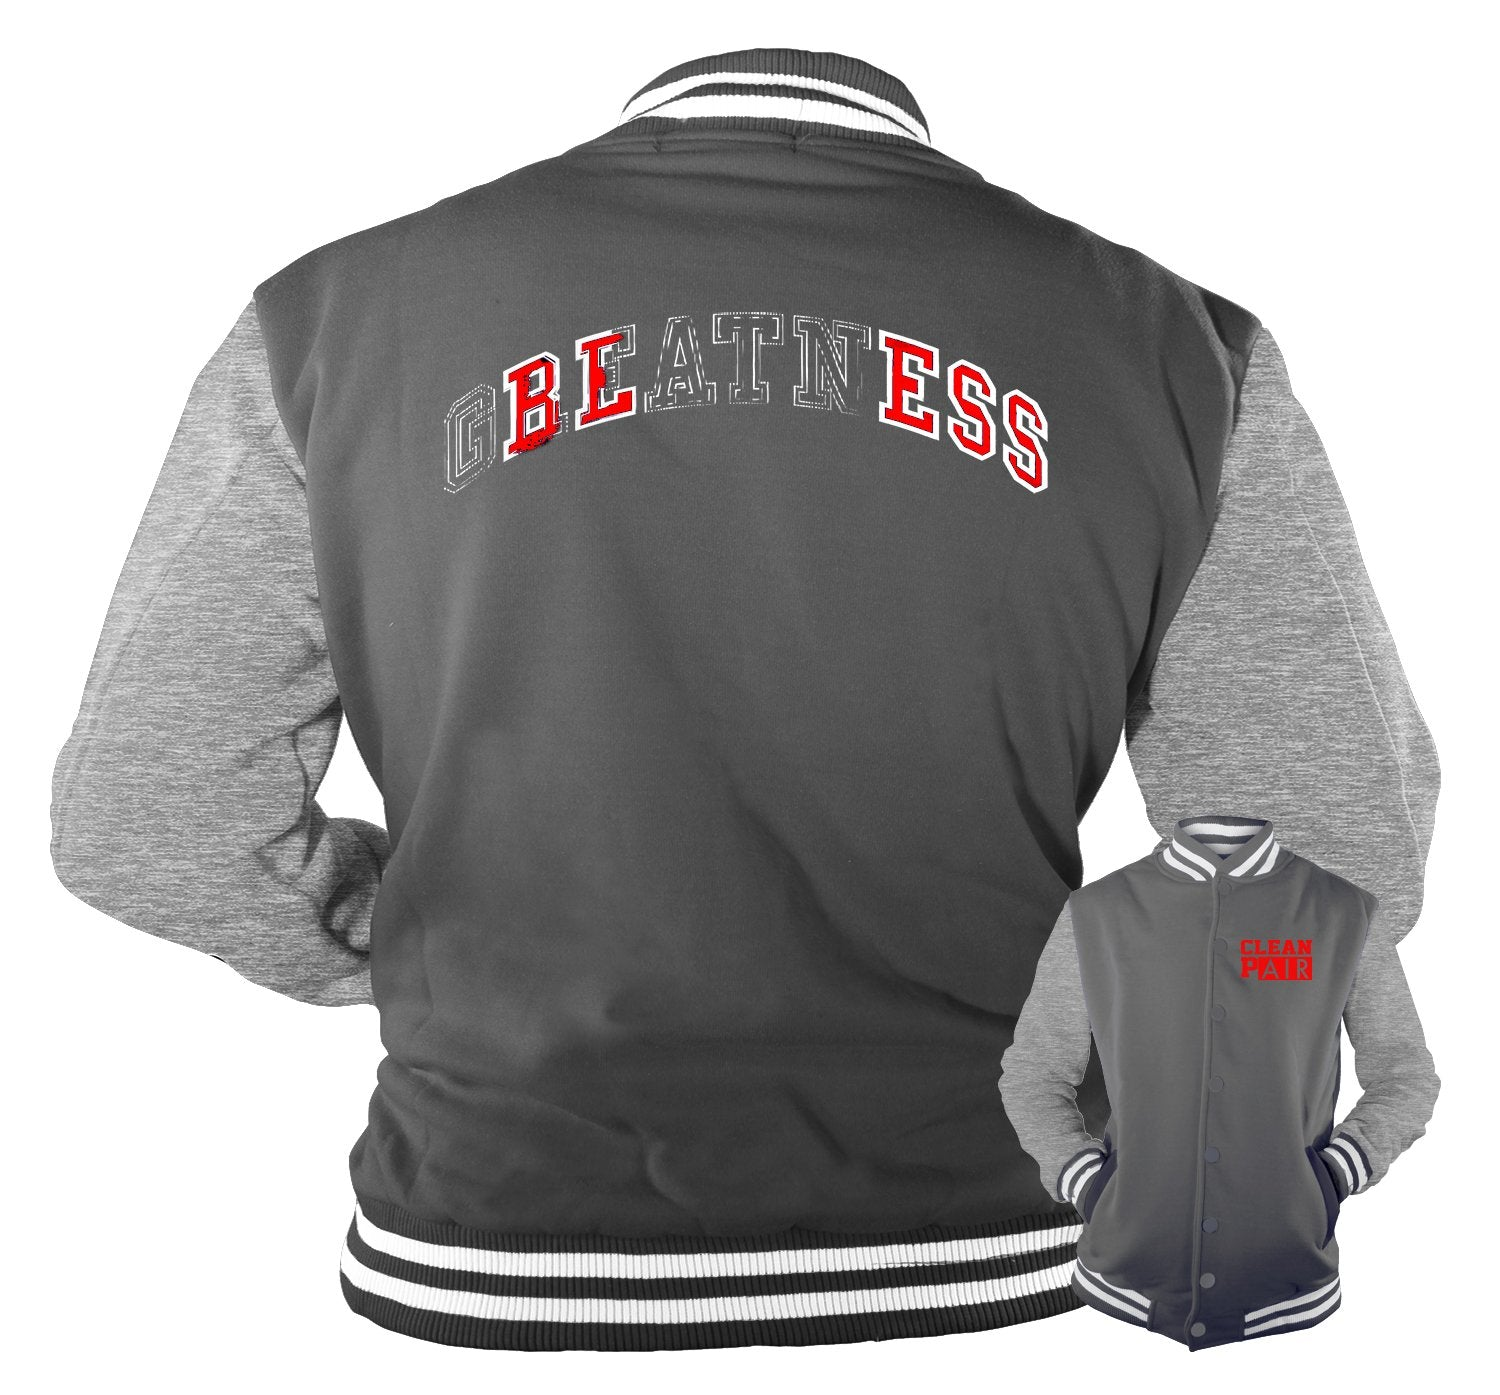 Dark Grey 12 Jordans matching varsity jacket